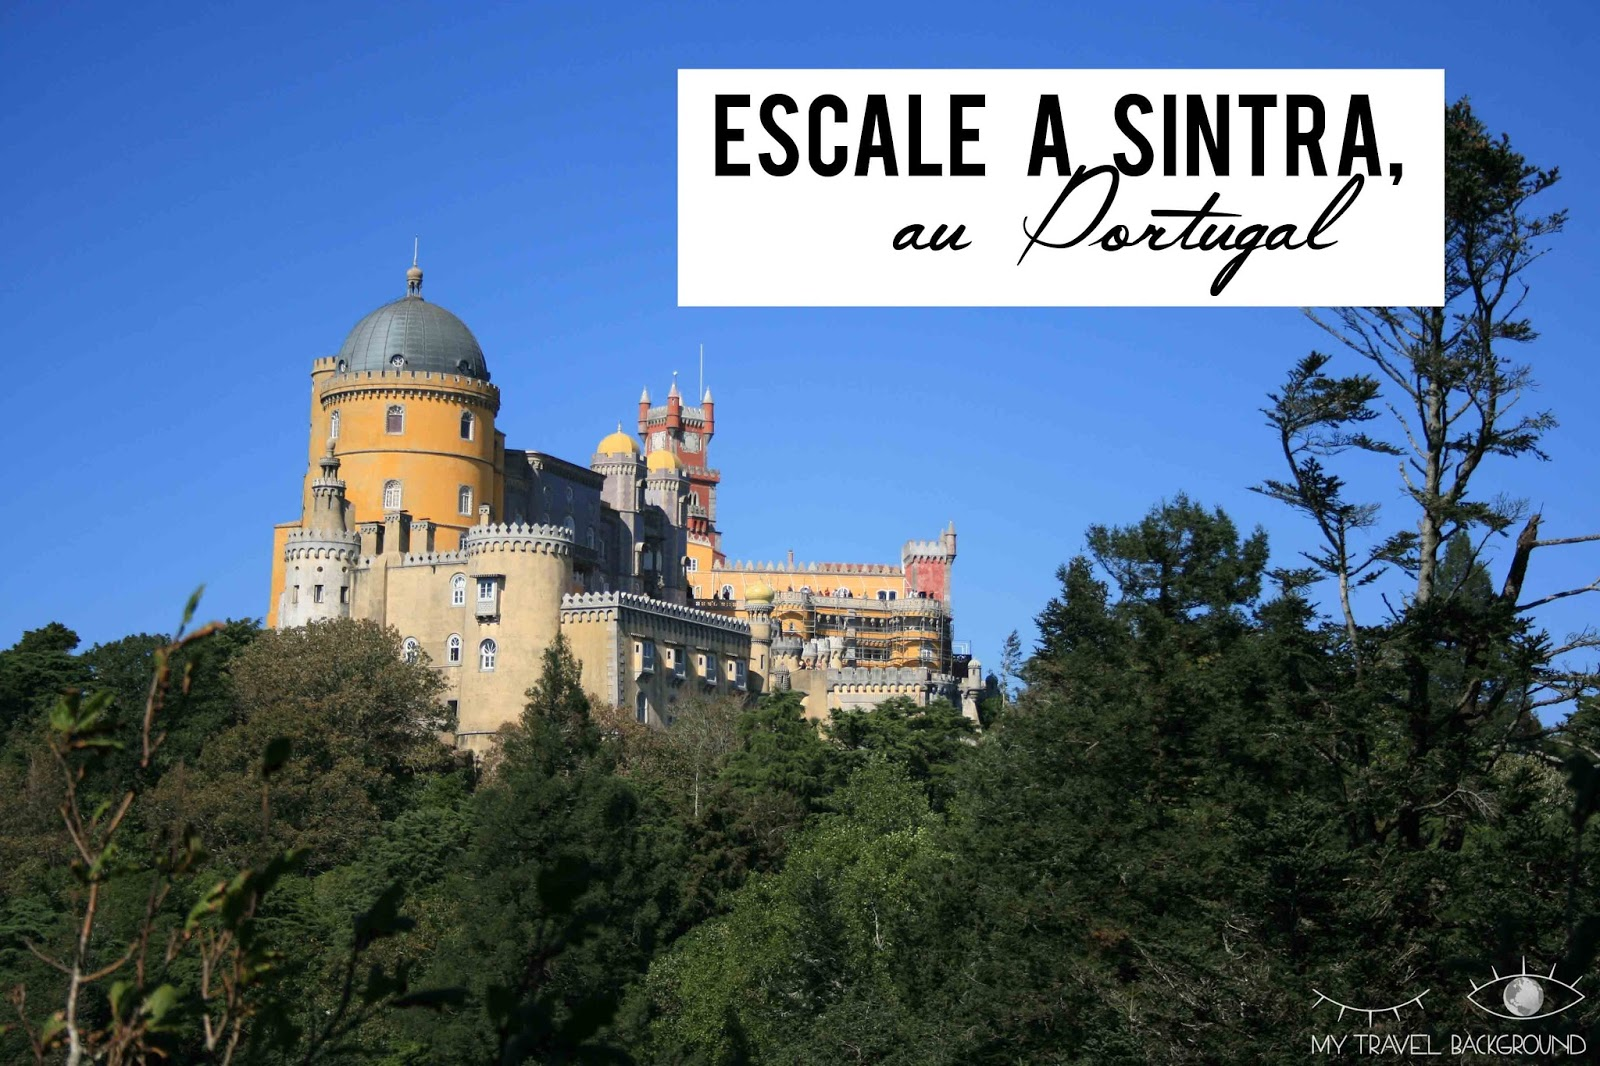 My Travel Background : Escale à Sintra, au Portugal